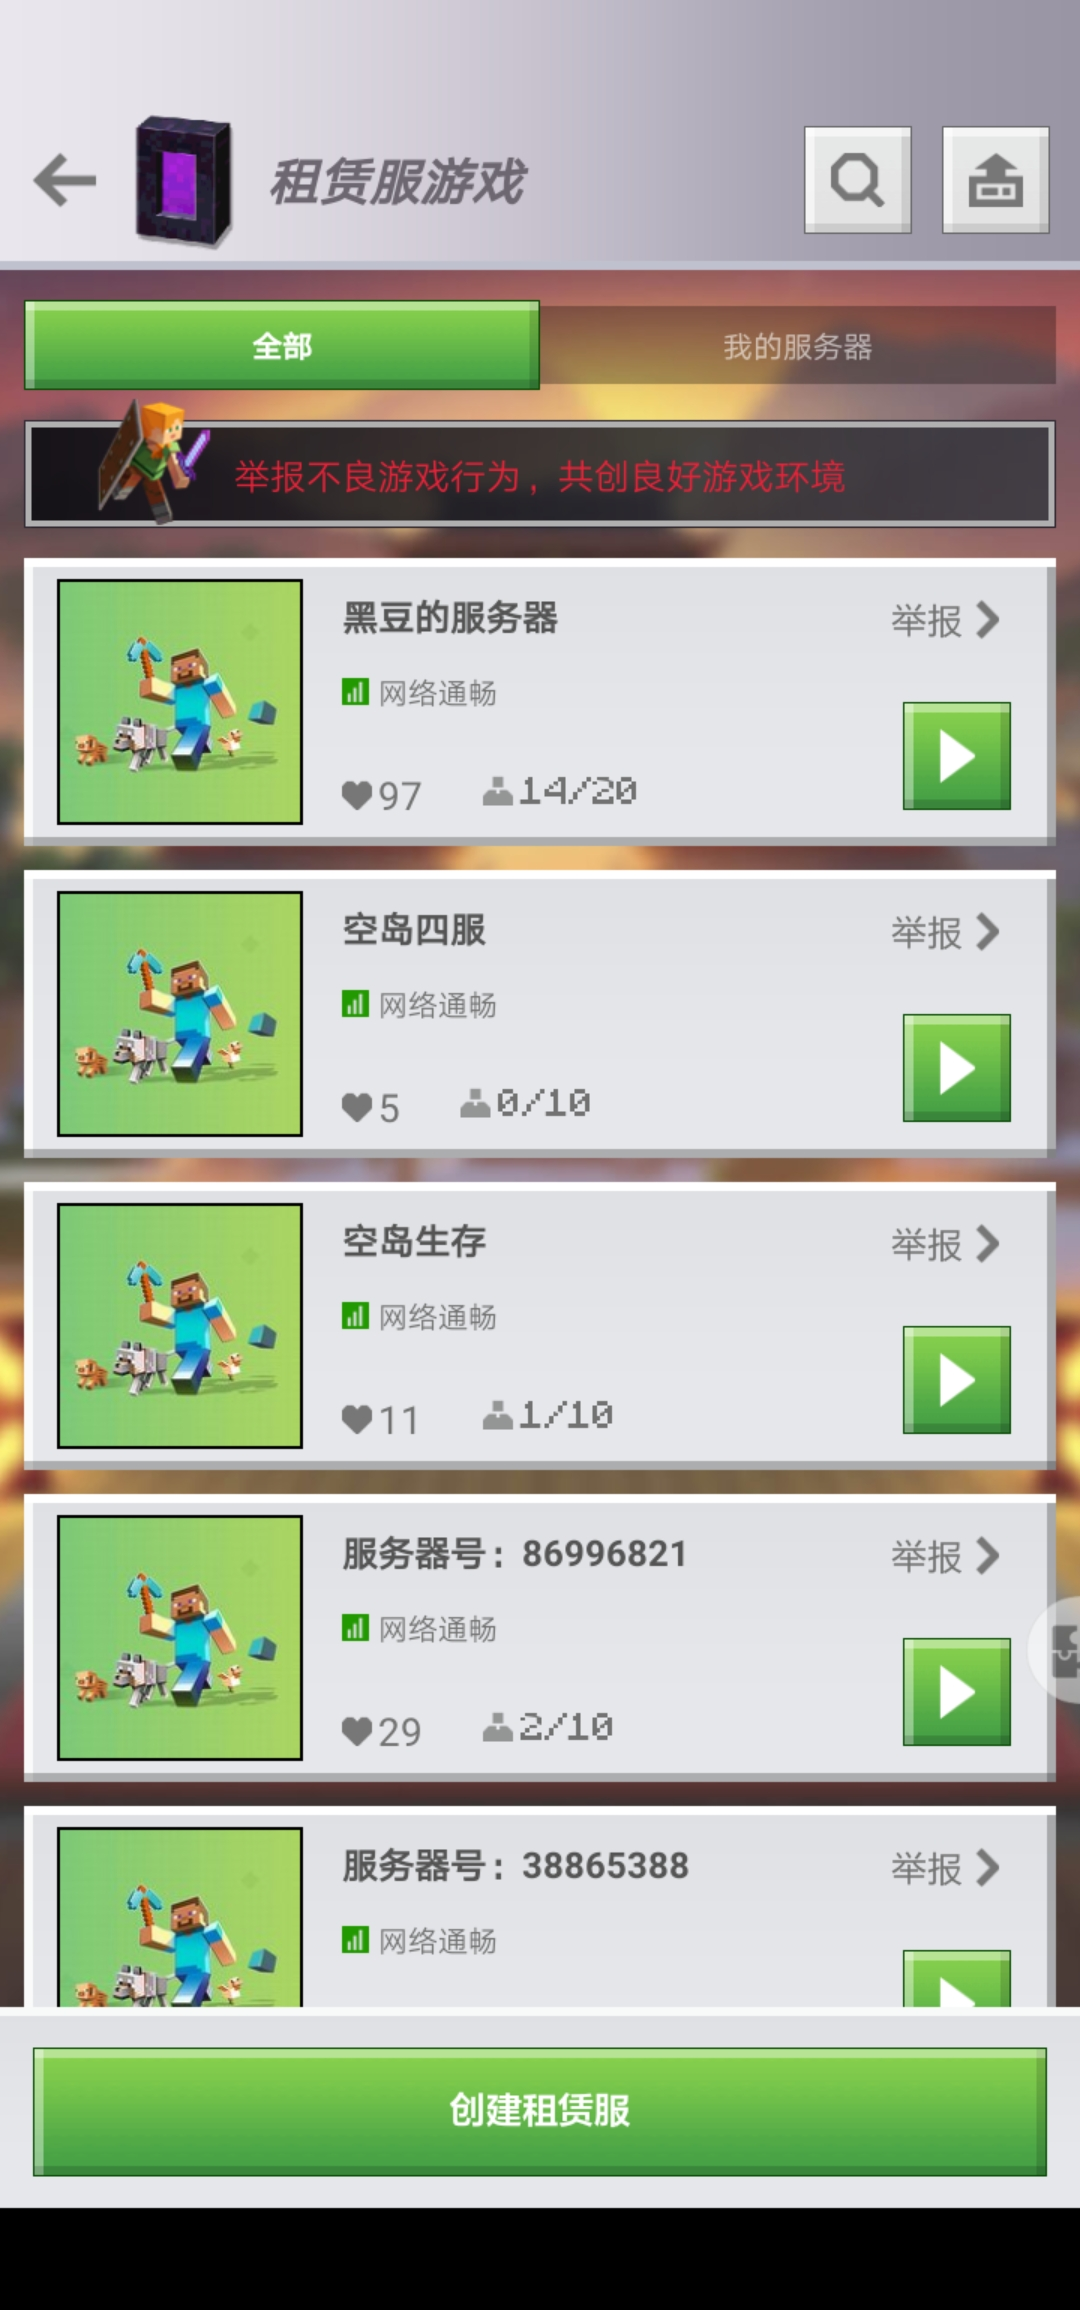 Screenshot_20200411_202736_com.netease.mc.huawei.jpg